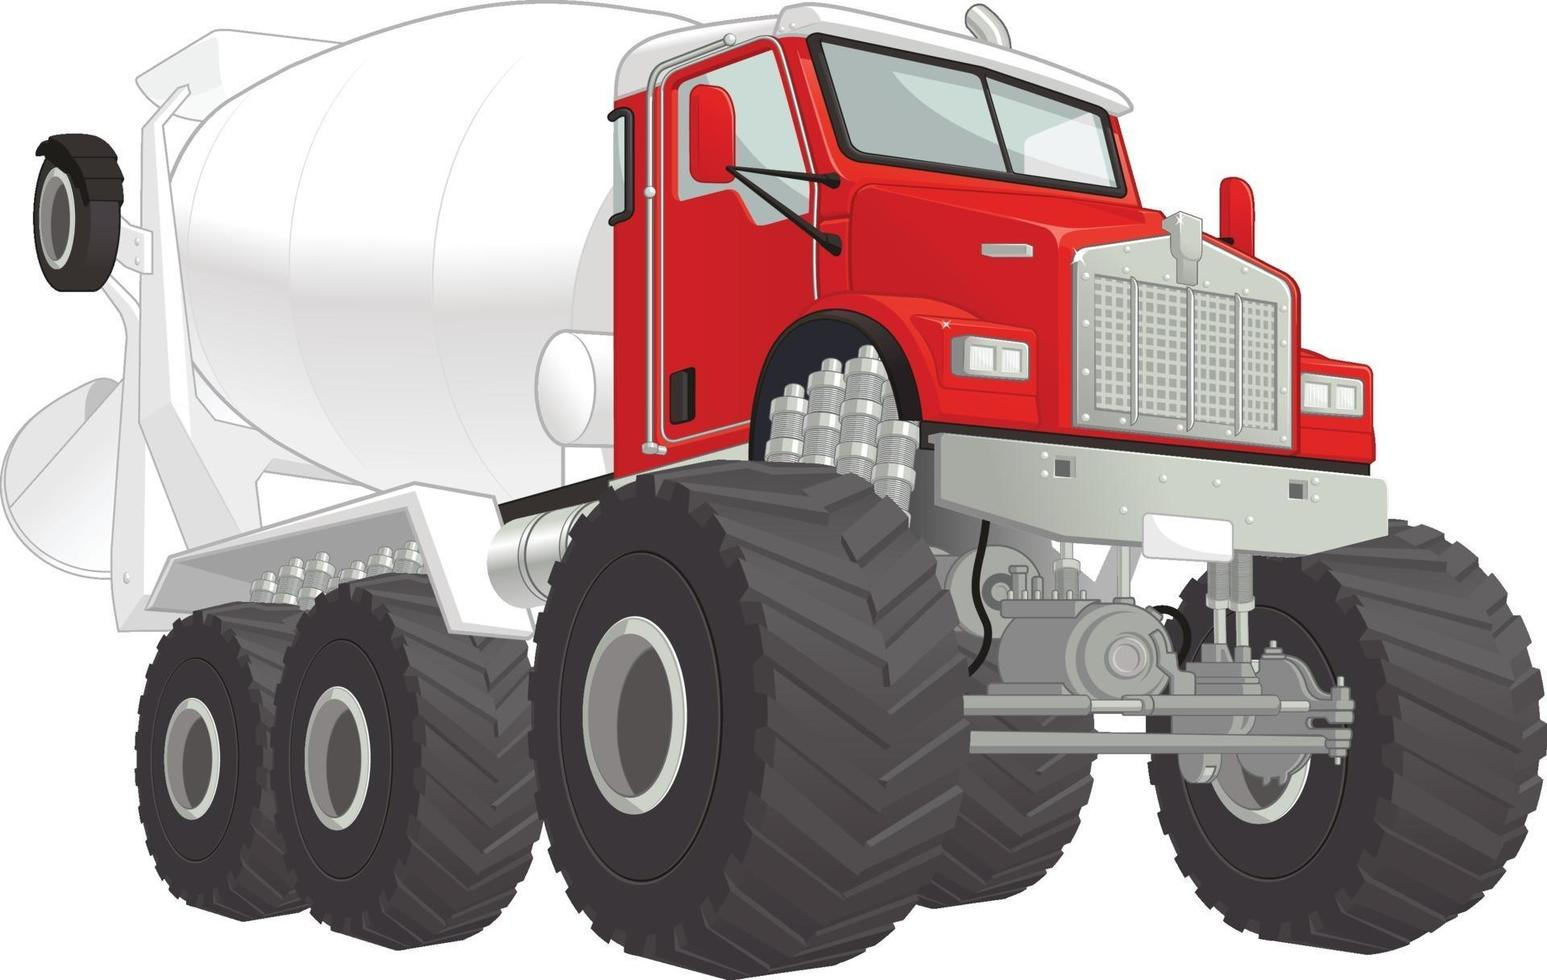 Monster Truck Zementmischer Auto Cartoon Vektor-Illustration Zeichnung vektor